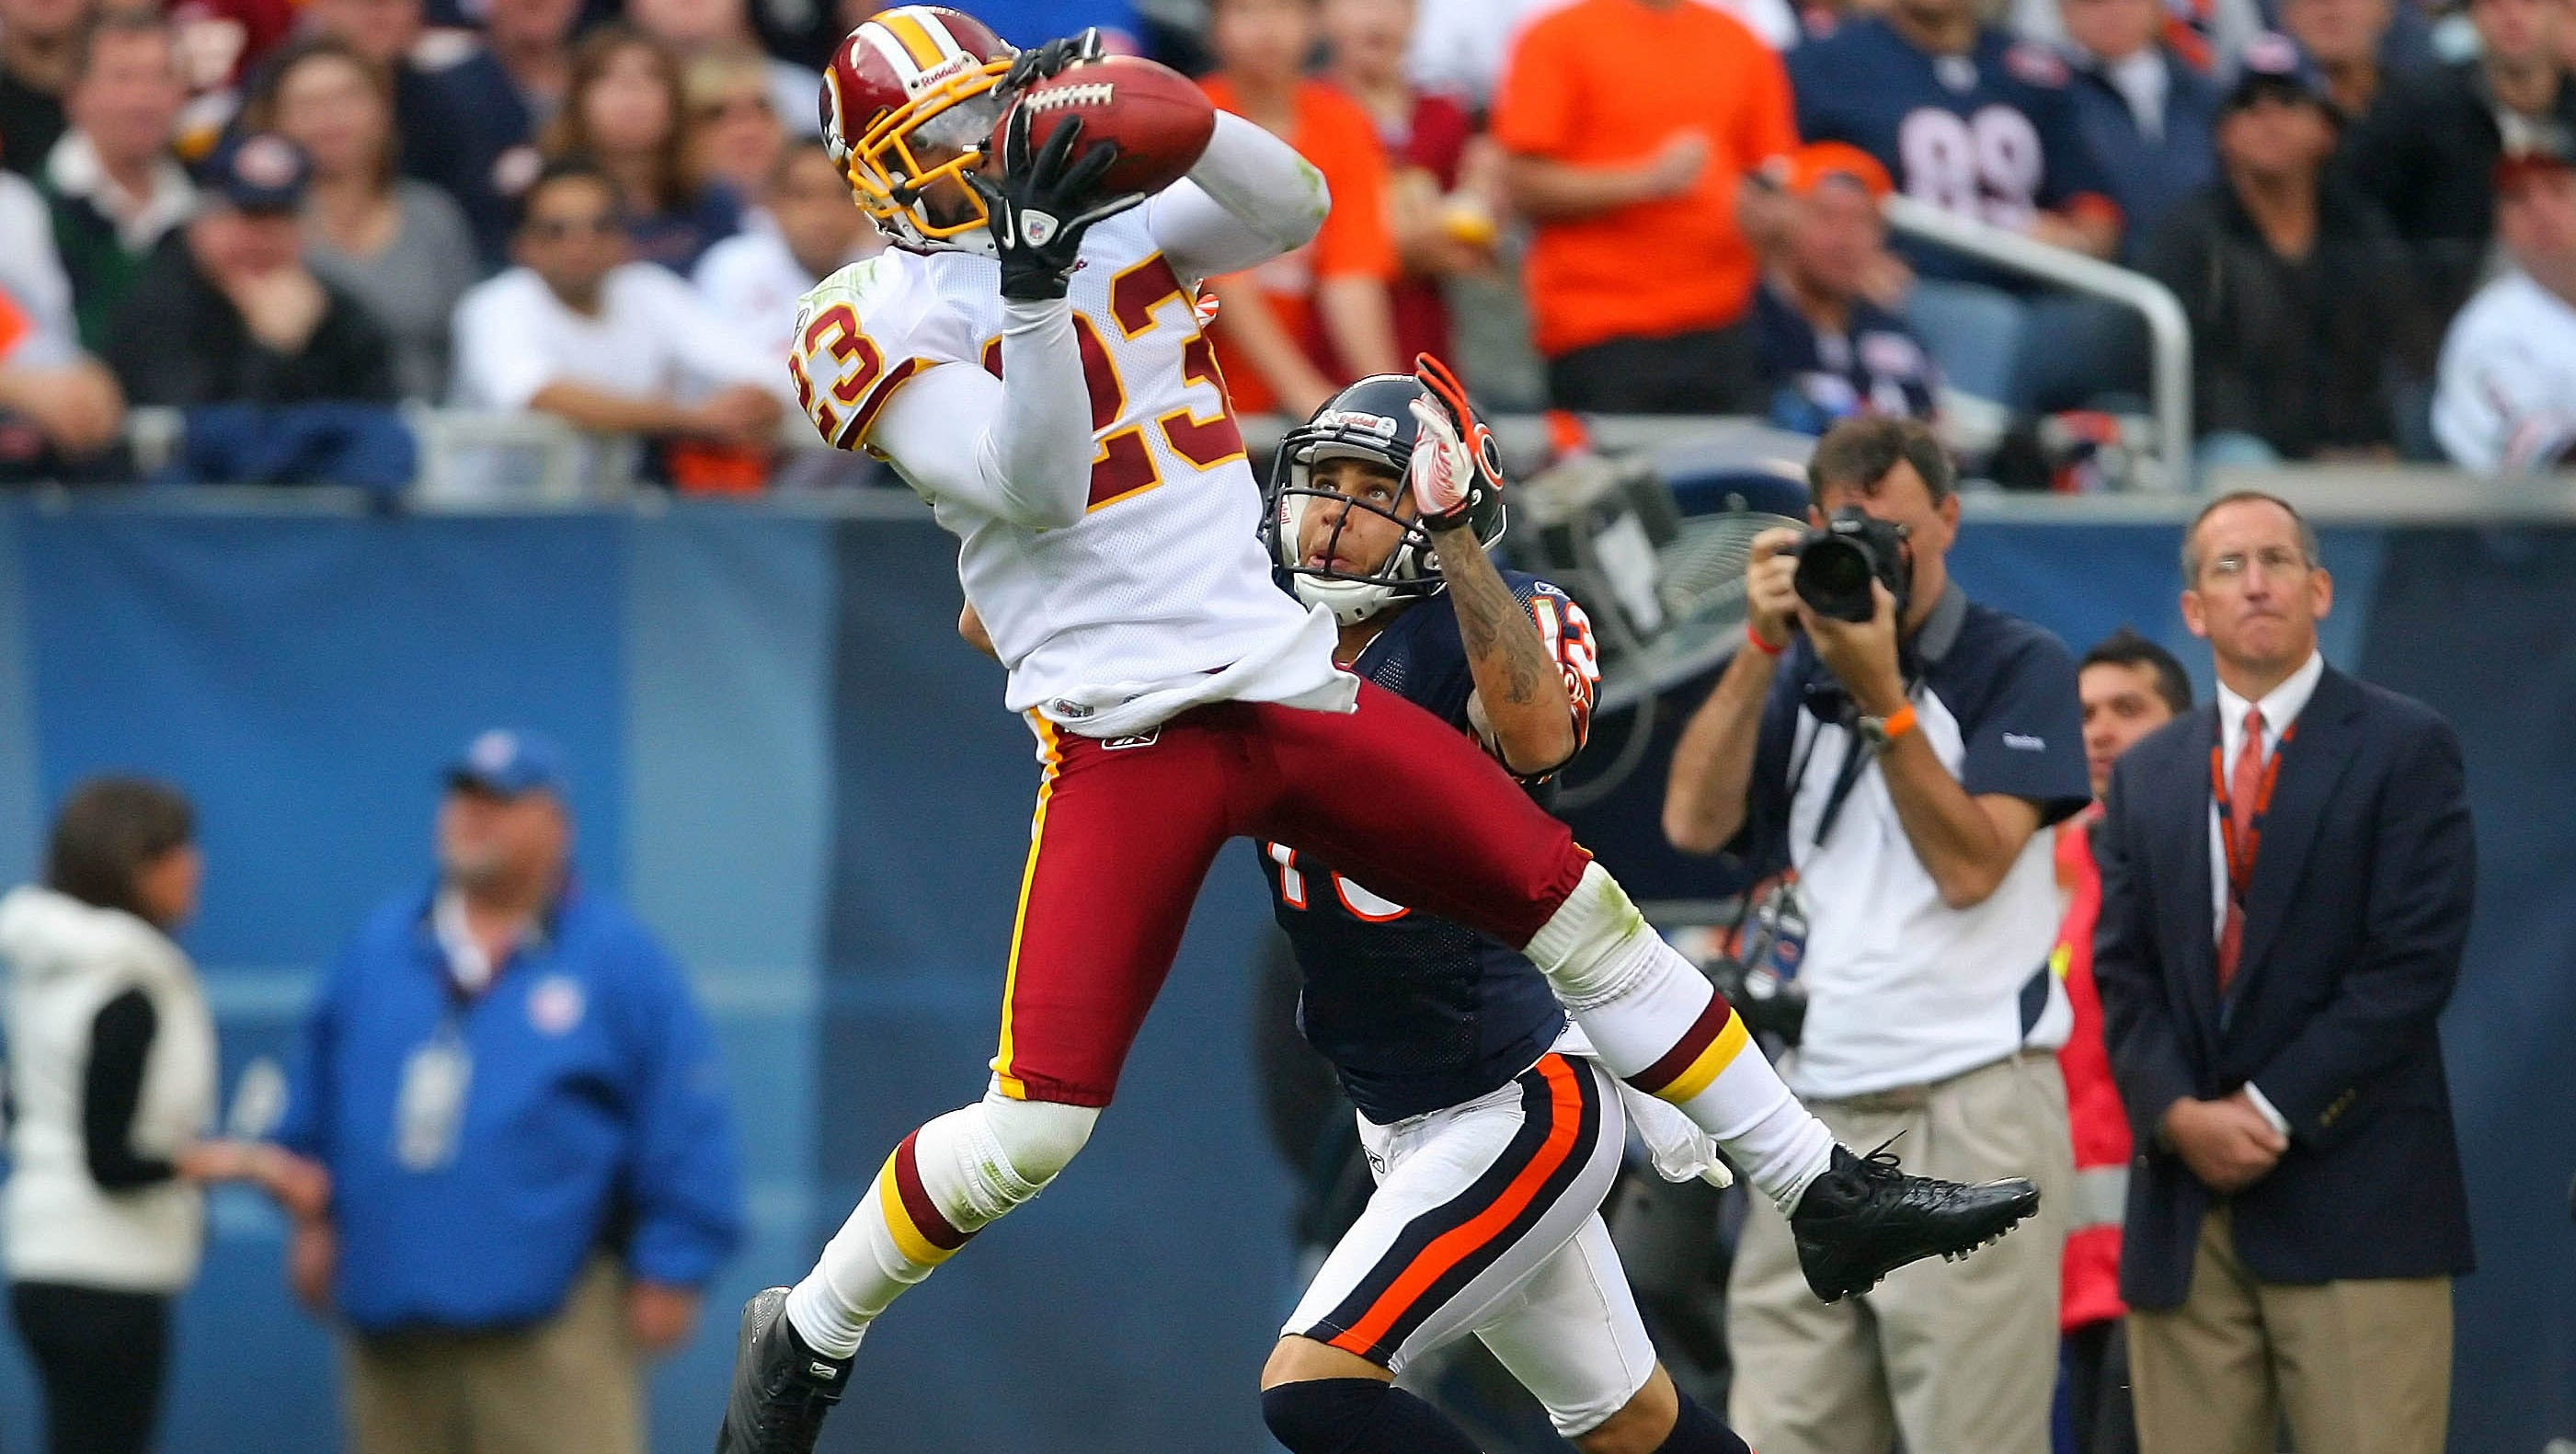 """Image result for Deangelo Hall On His Four Interceptions Of Jay Cutler: """"He Wanted To Keep Trying So I Had To Make Him Pay For It."""""""""""